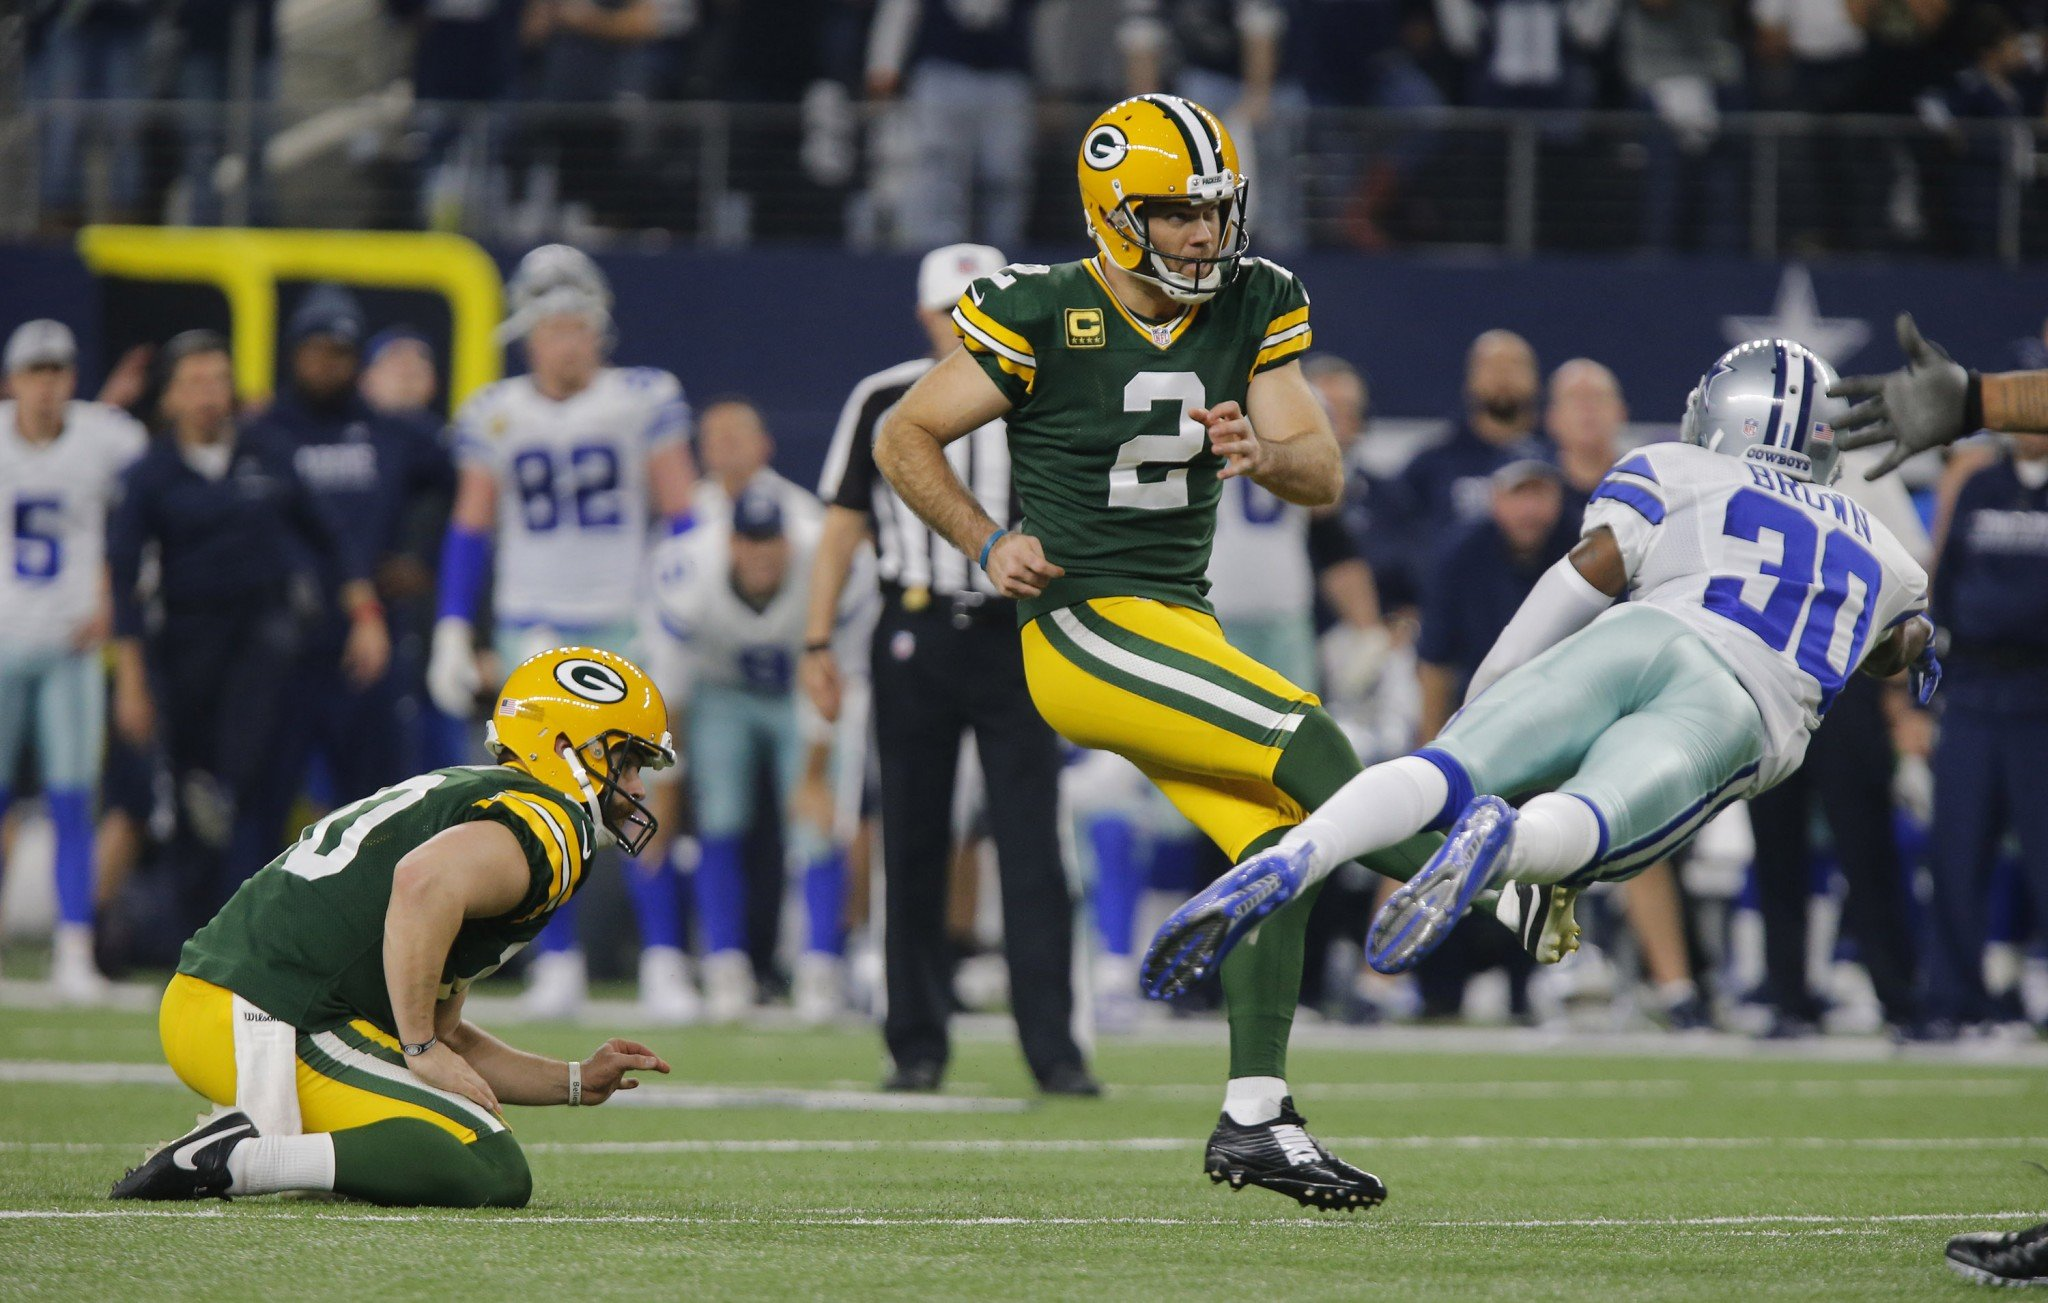 The Packers' win over the Cowboys was the most-watched NFL divisional round playoff game in 20 years. (Getty Images)